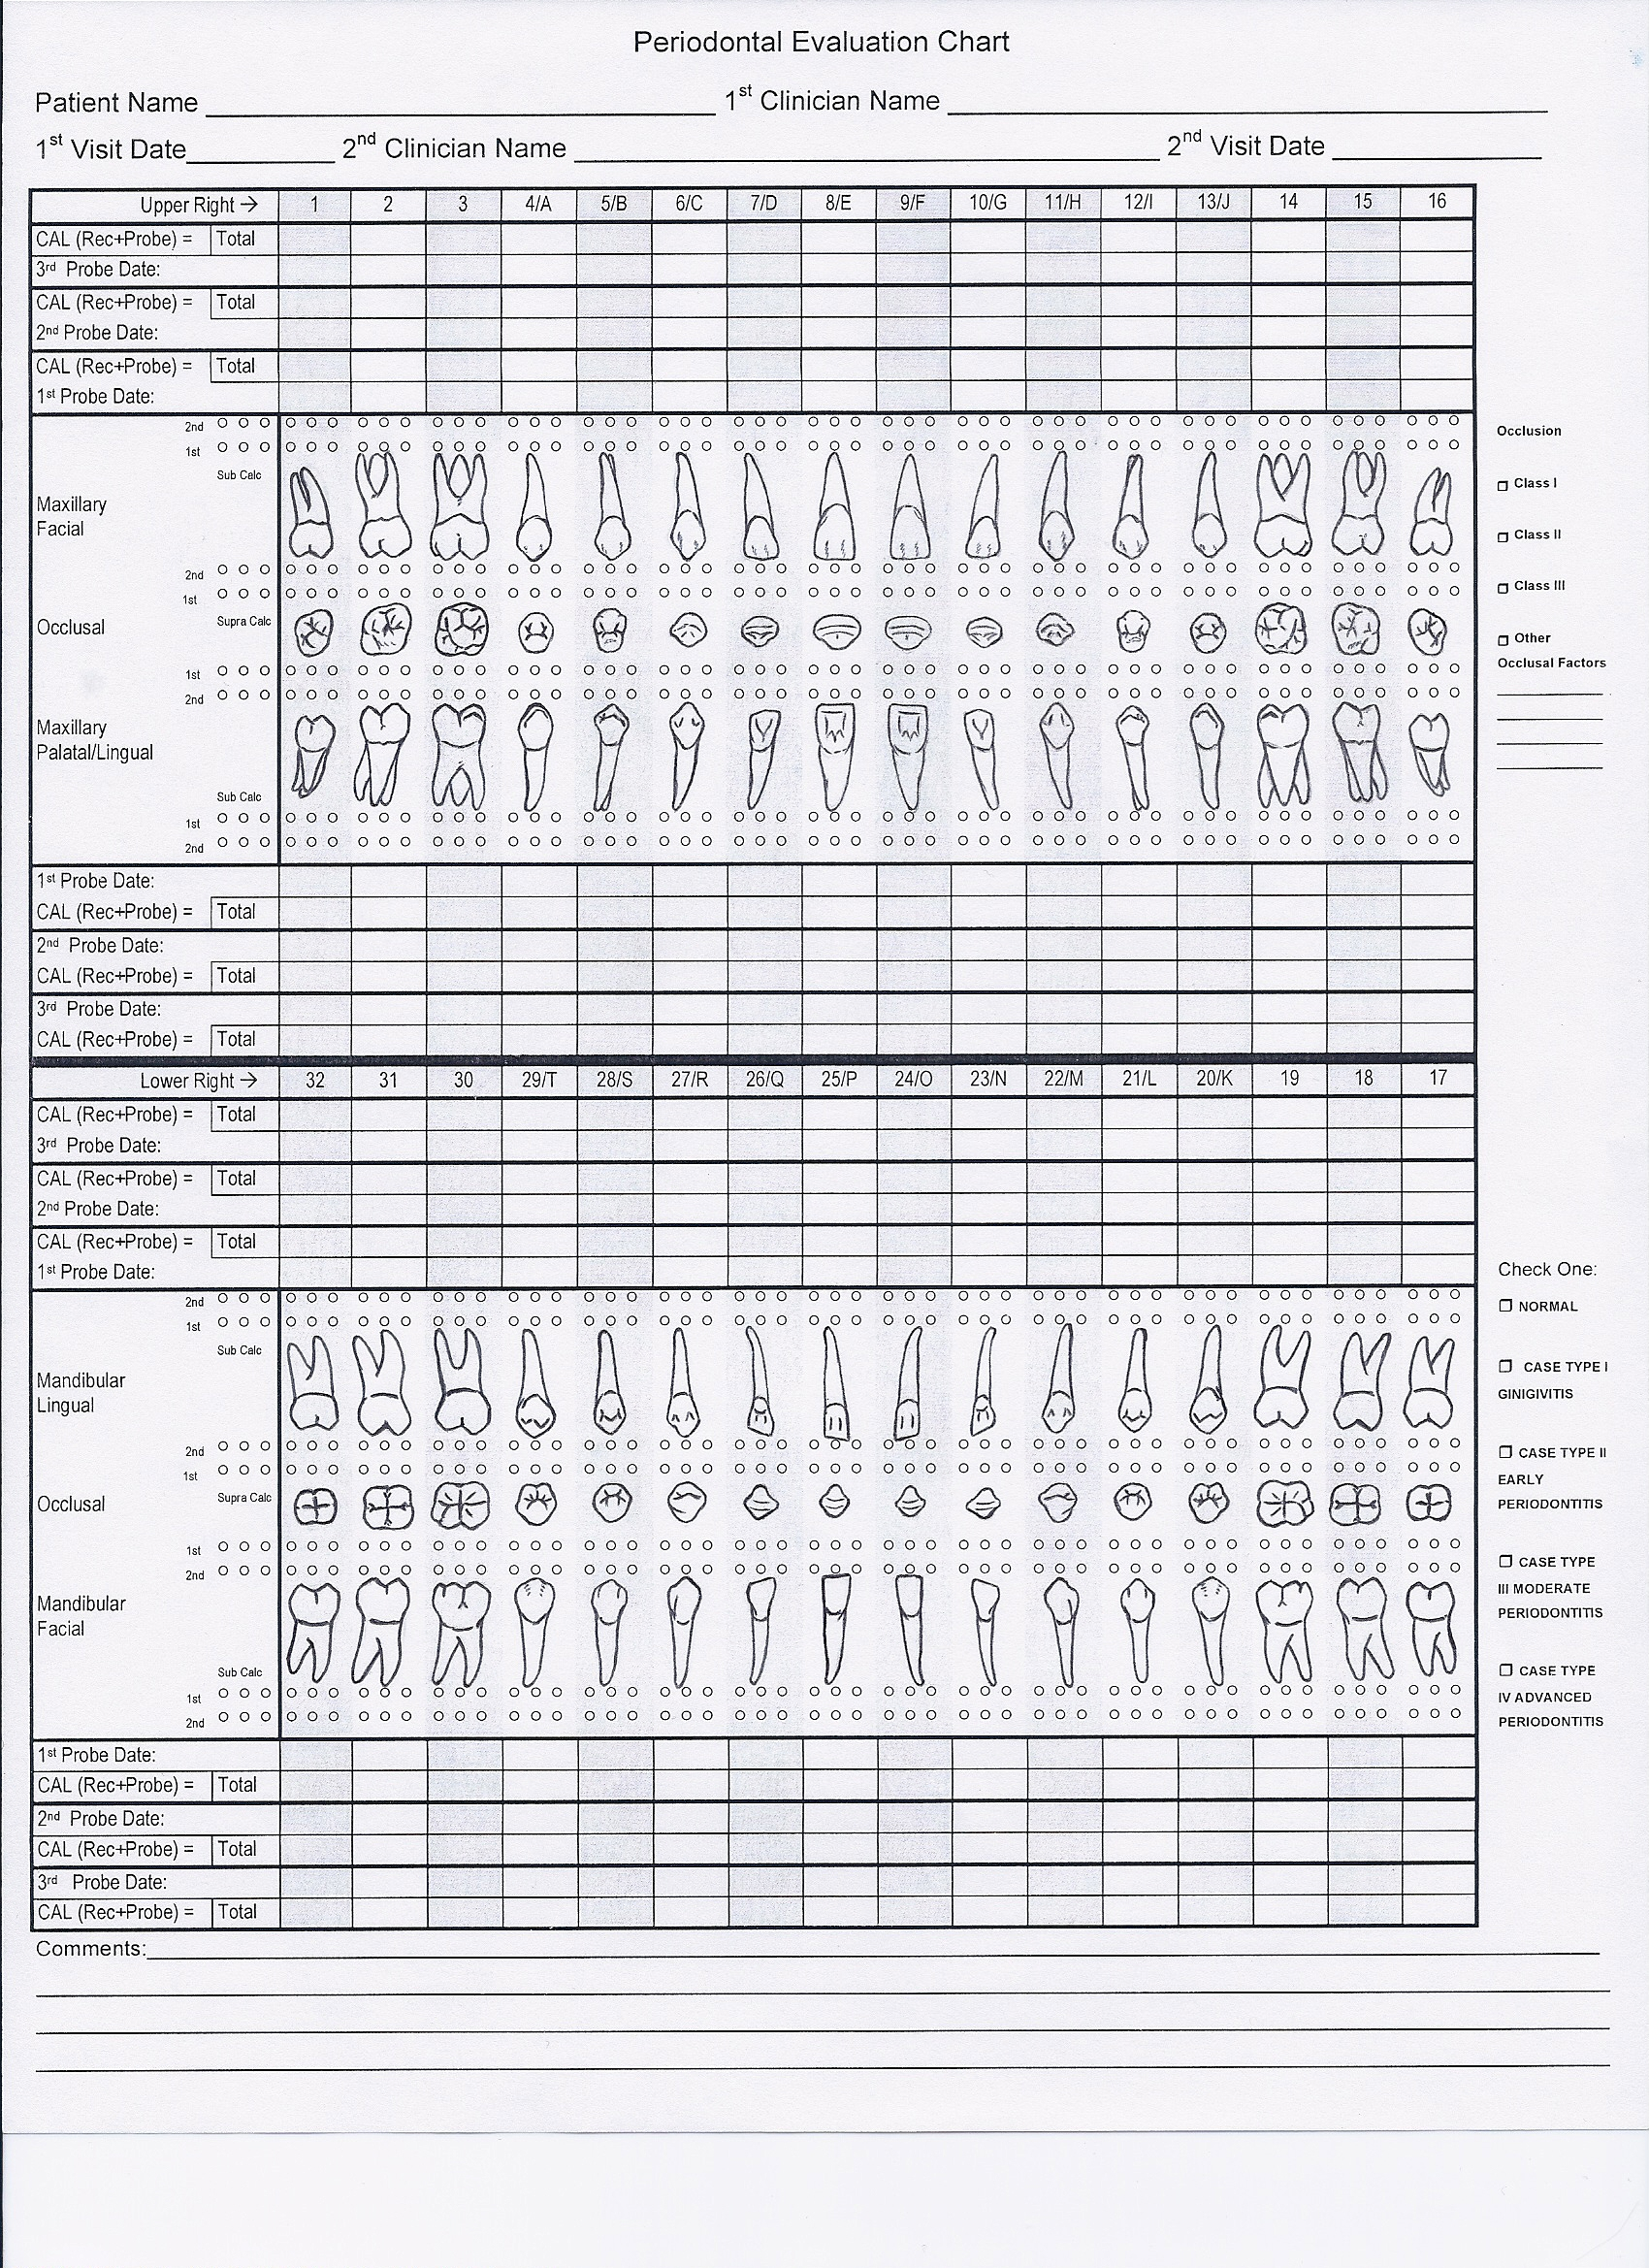 Tablecloth Size Chart: Periodontal Chart Illustrated.jpg - Wikipedia,Chart